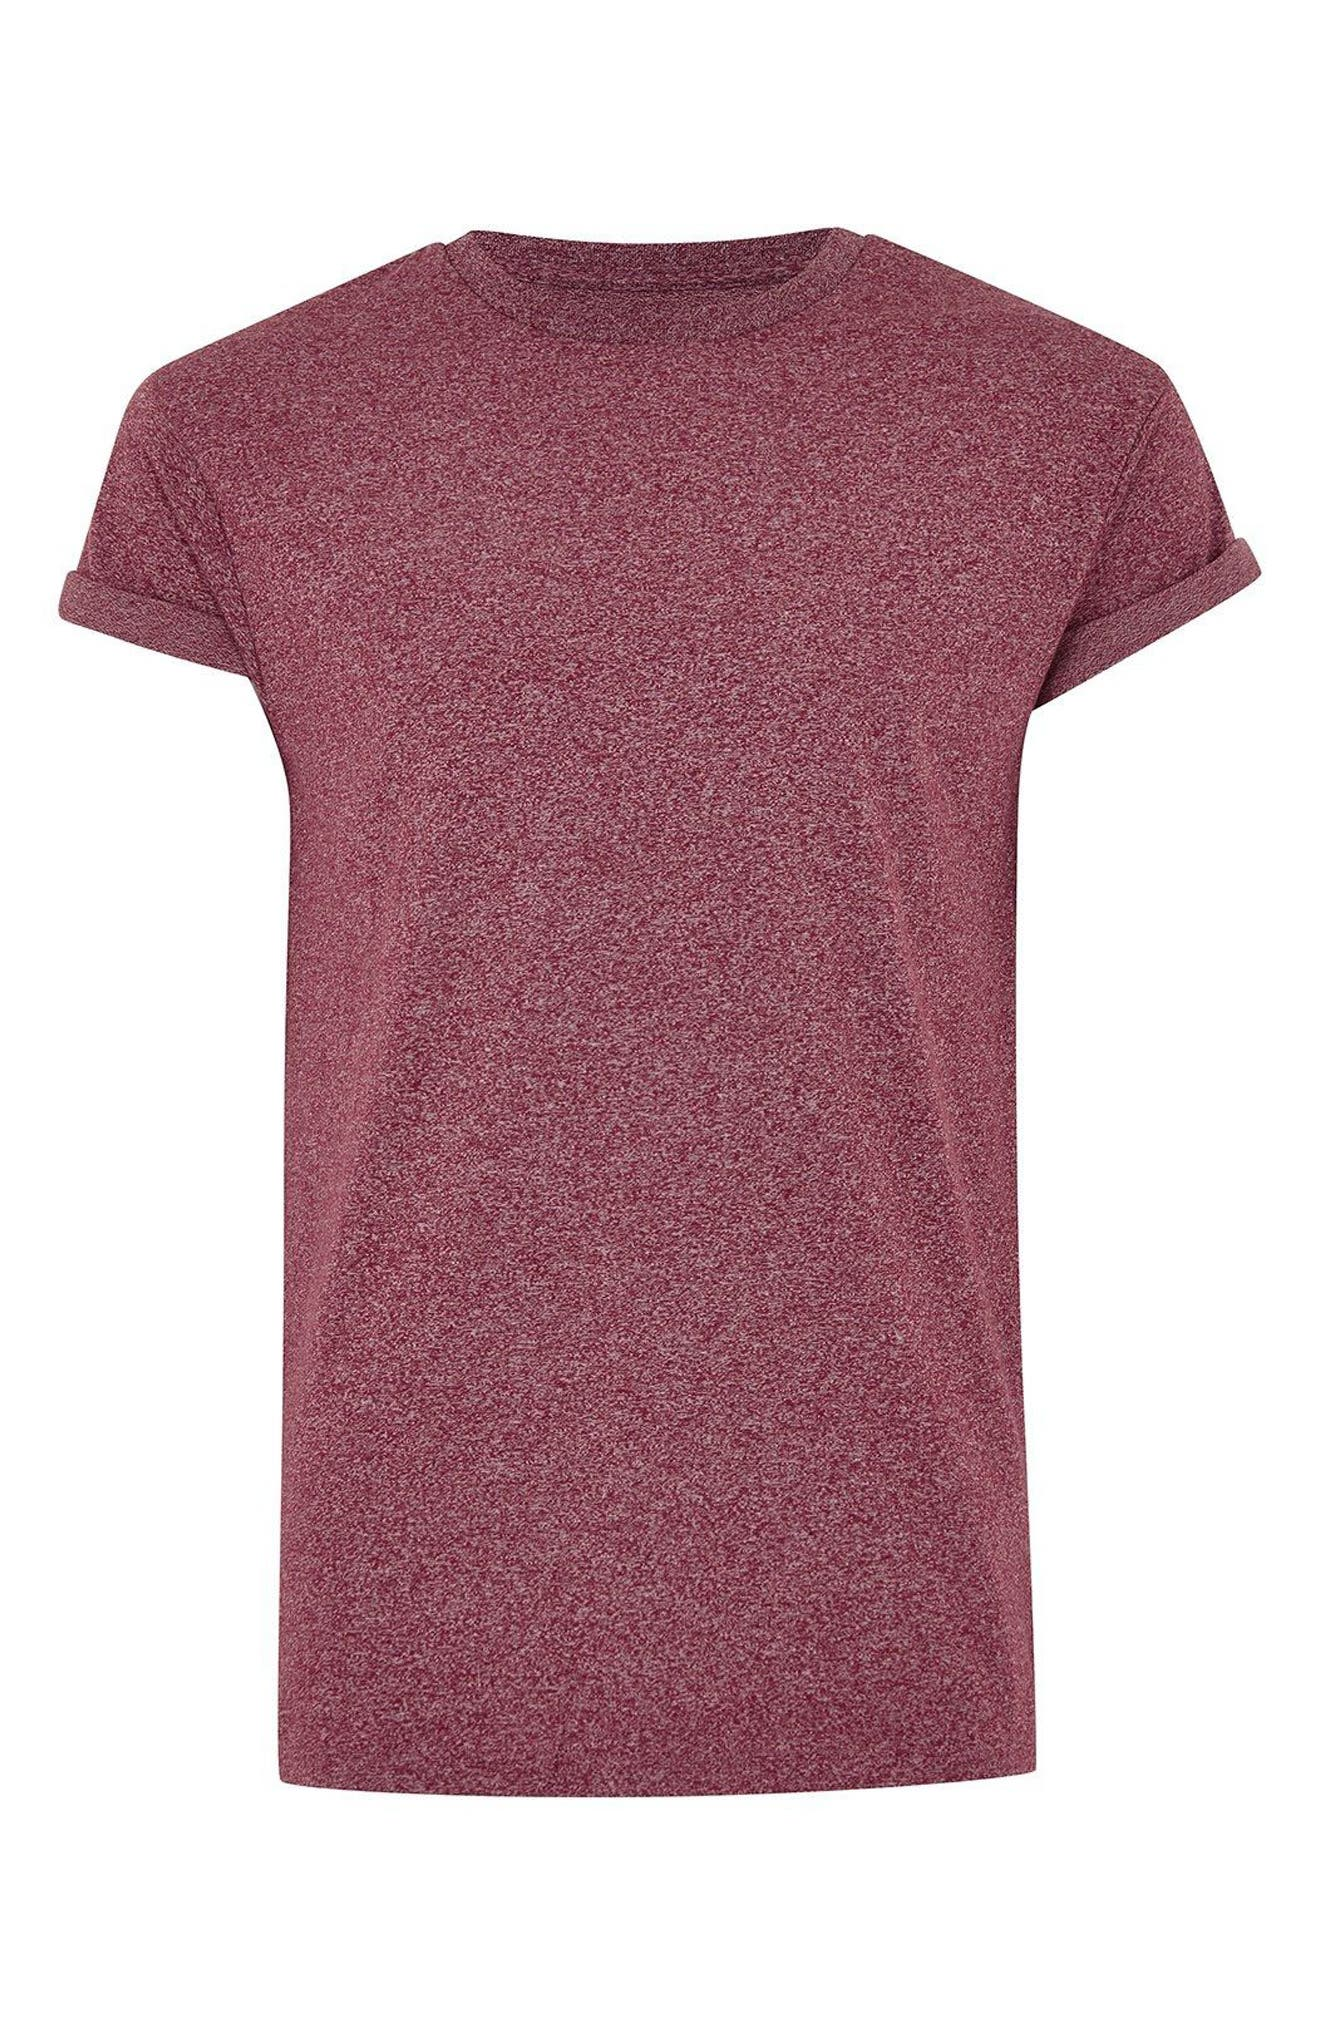 Muscle Fit Flecked T-Shirt,                             Alternate thumbnail 3, color,